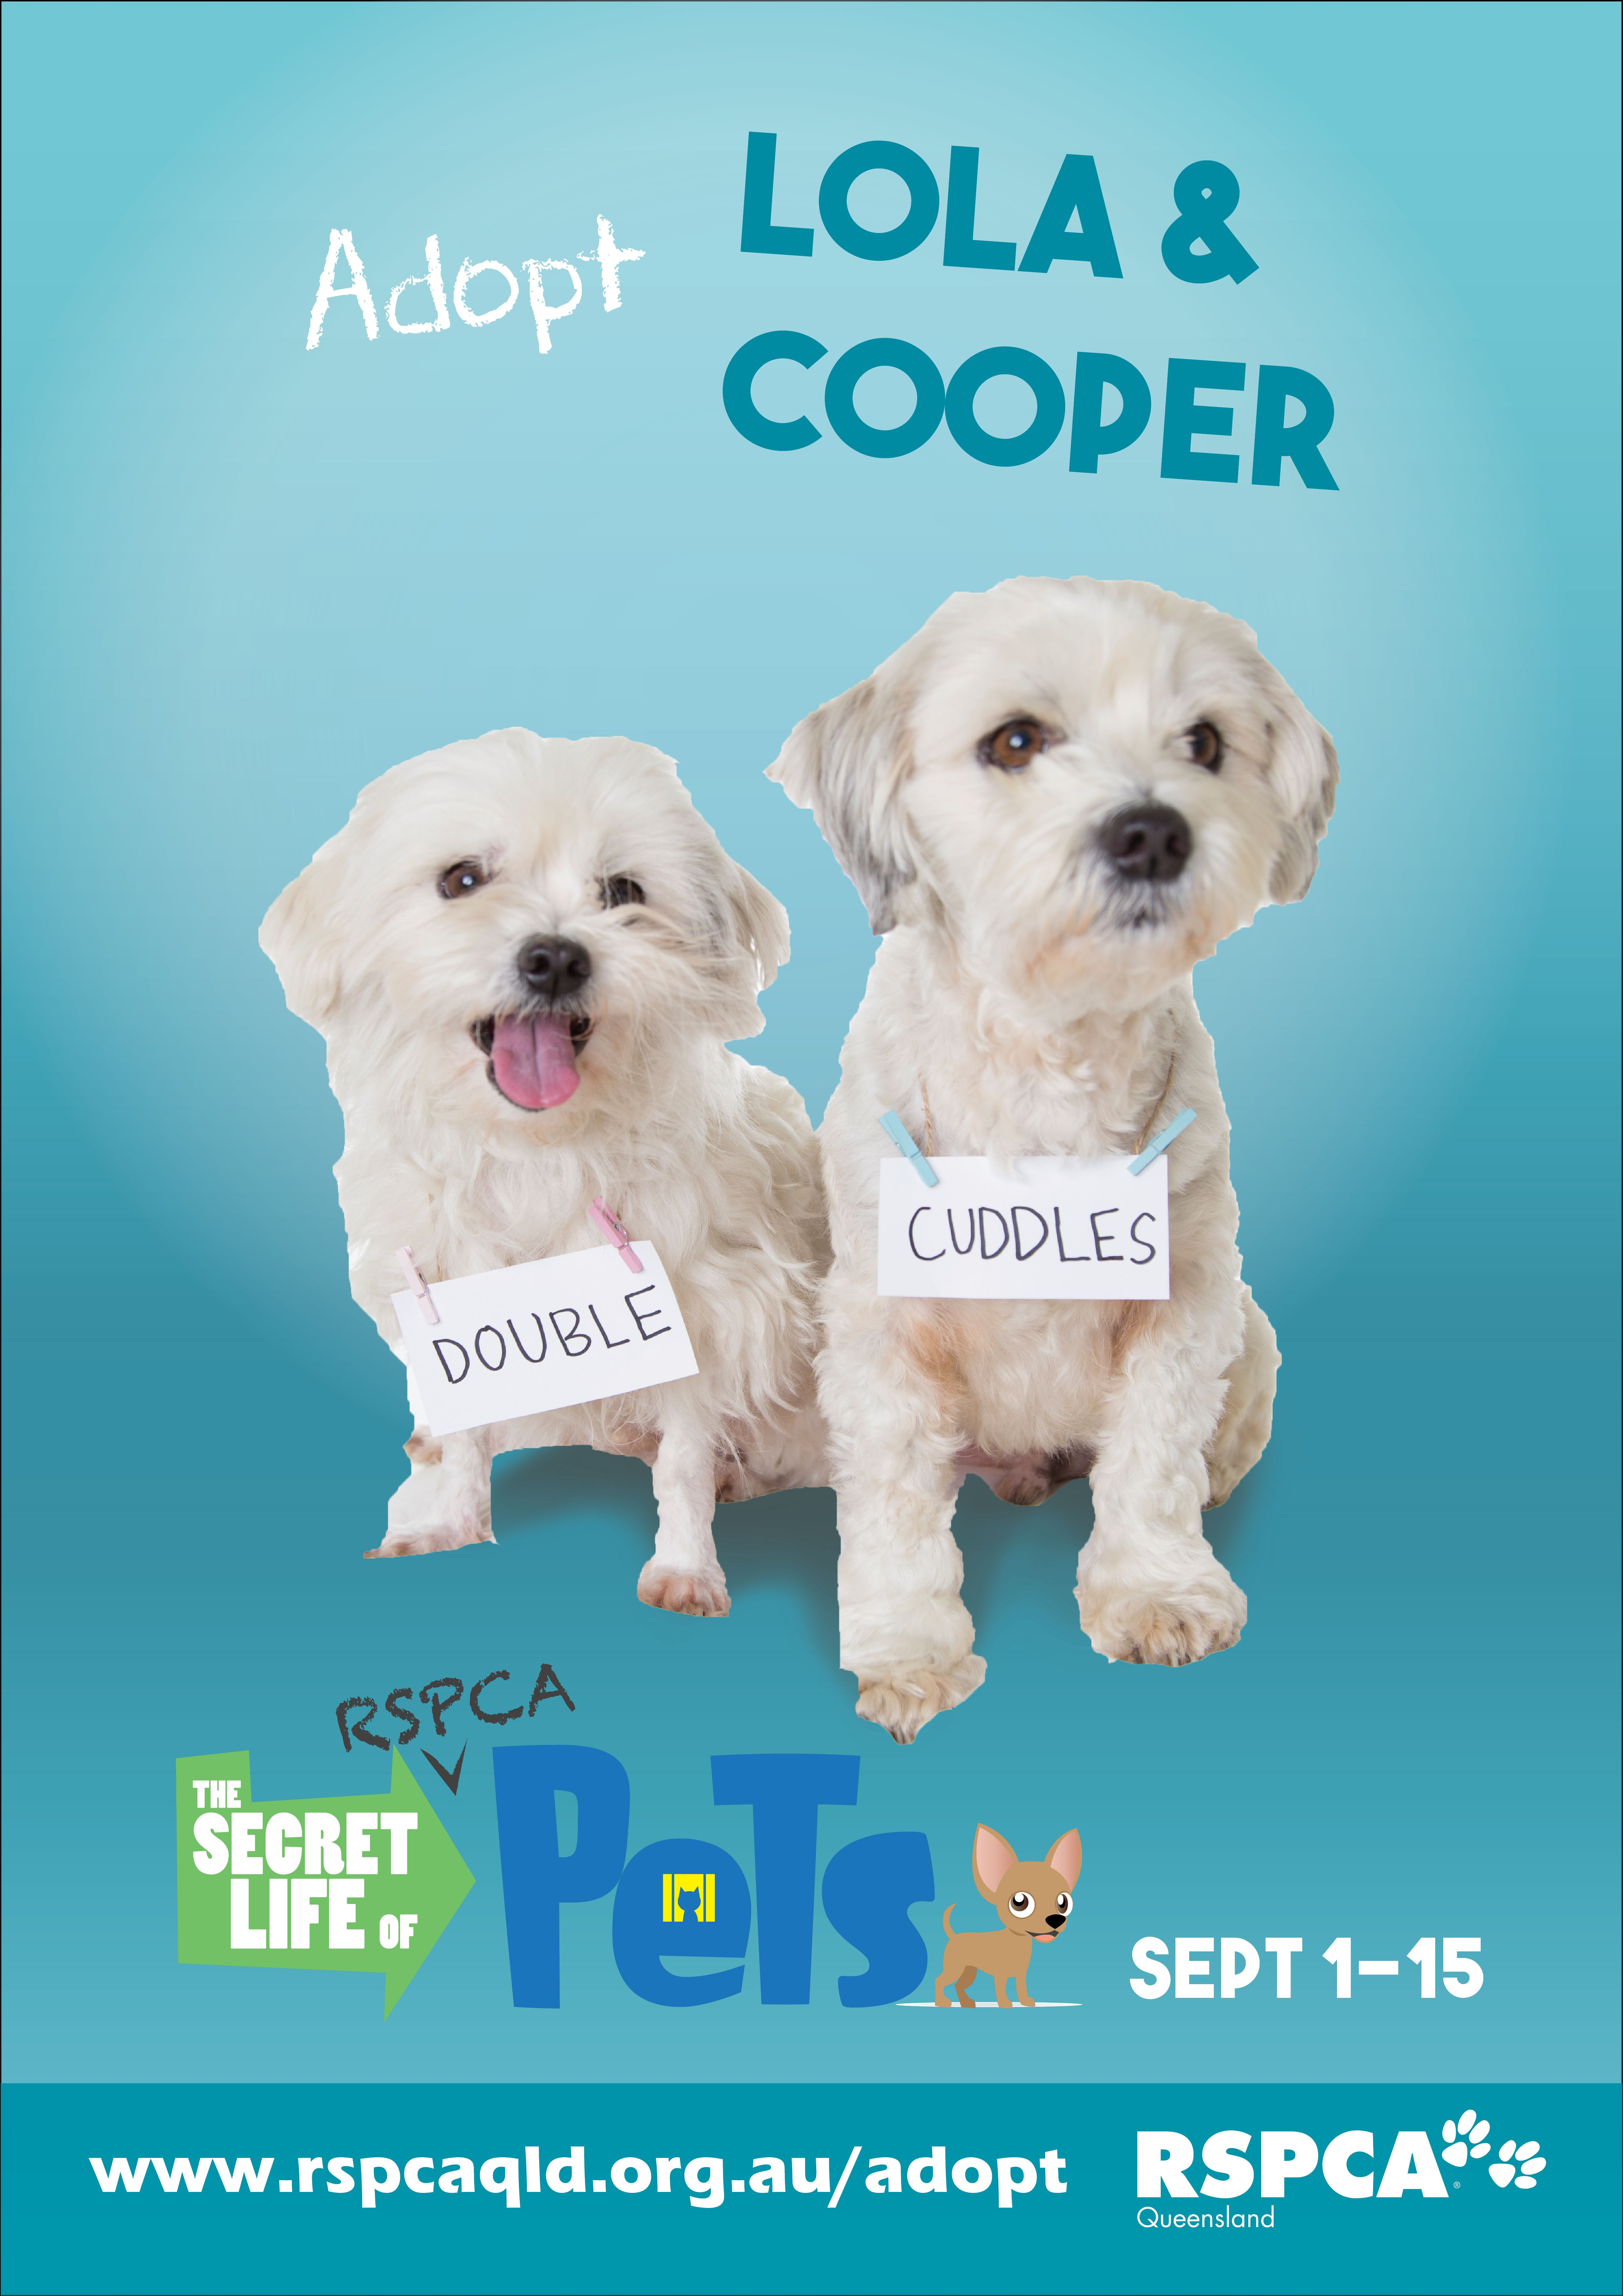 Double the dogs, double the love! RSPCApetsecretlife